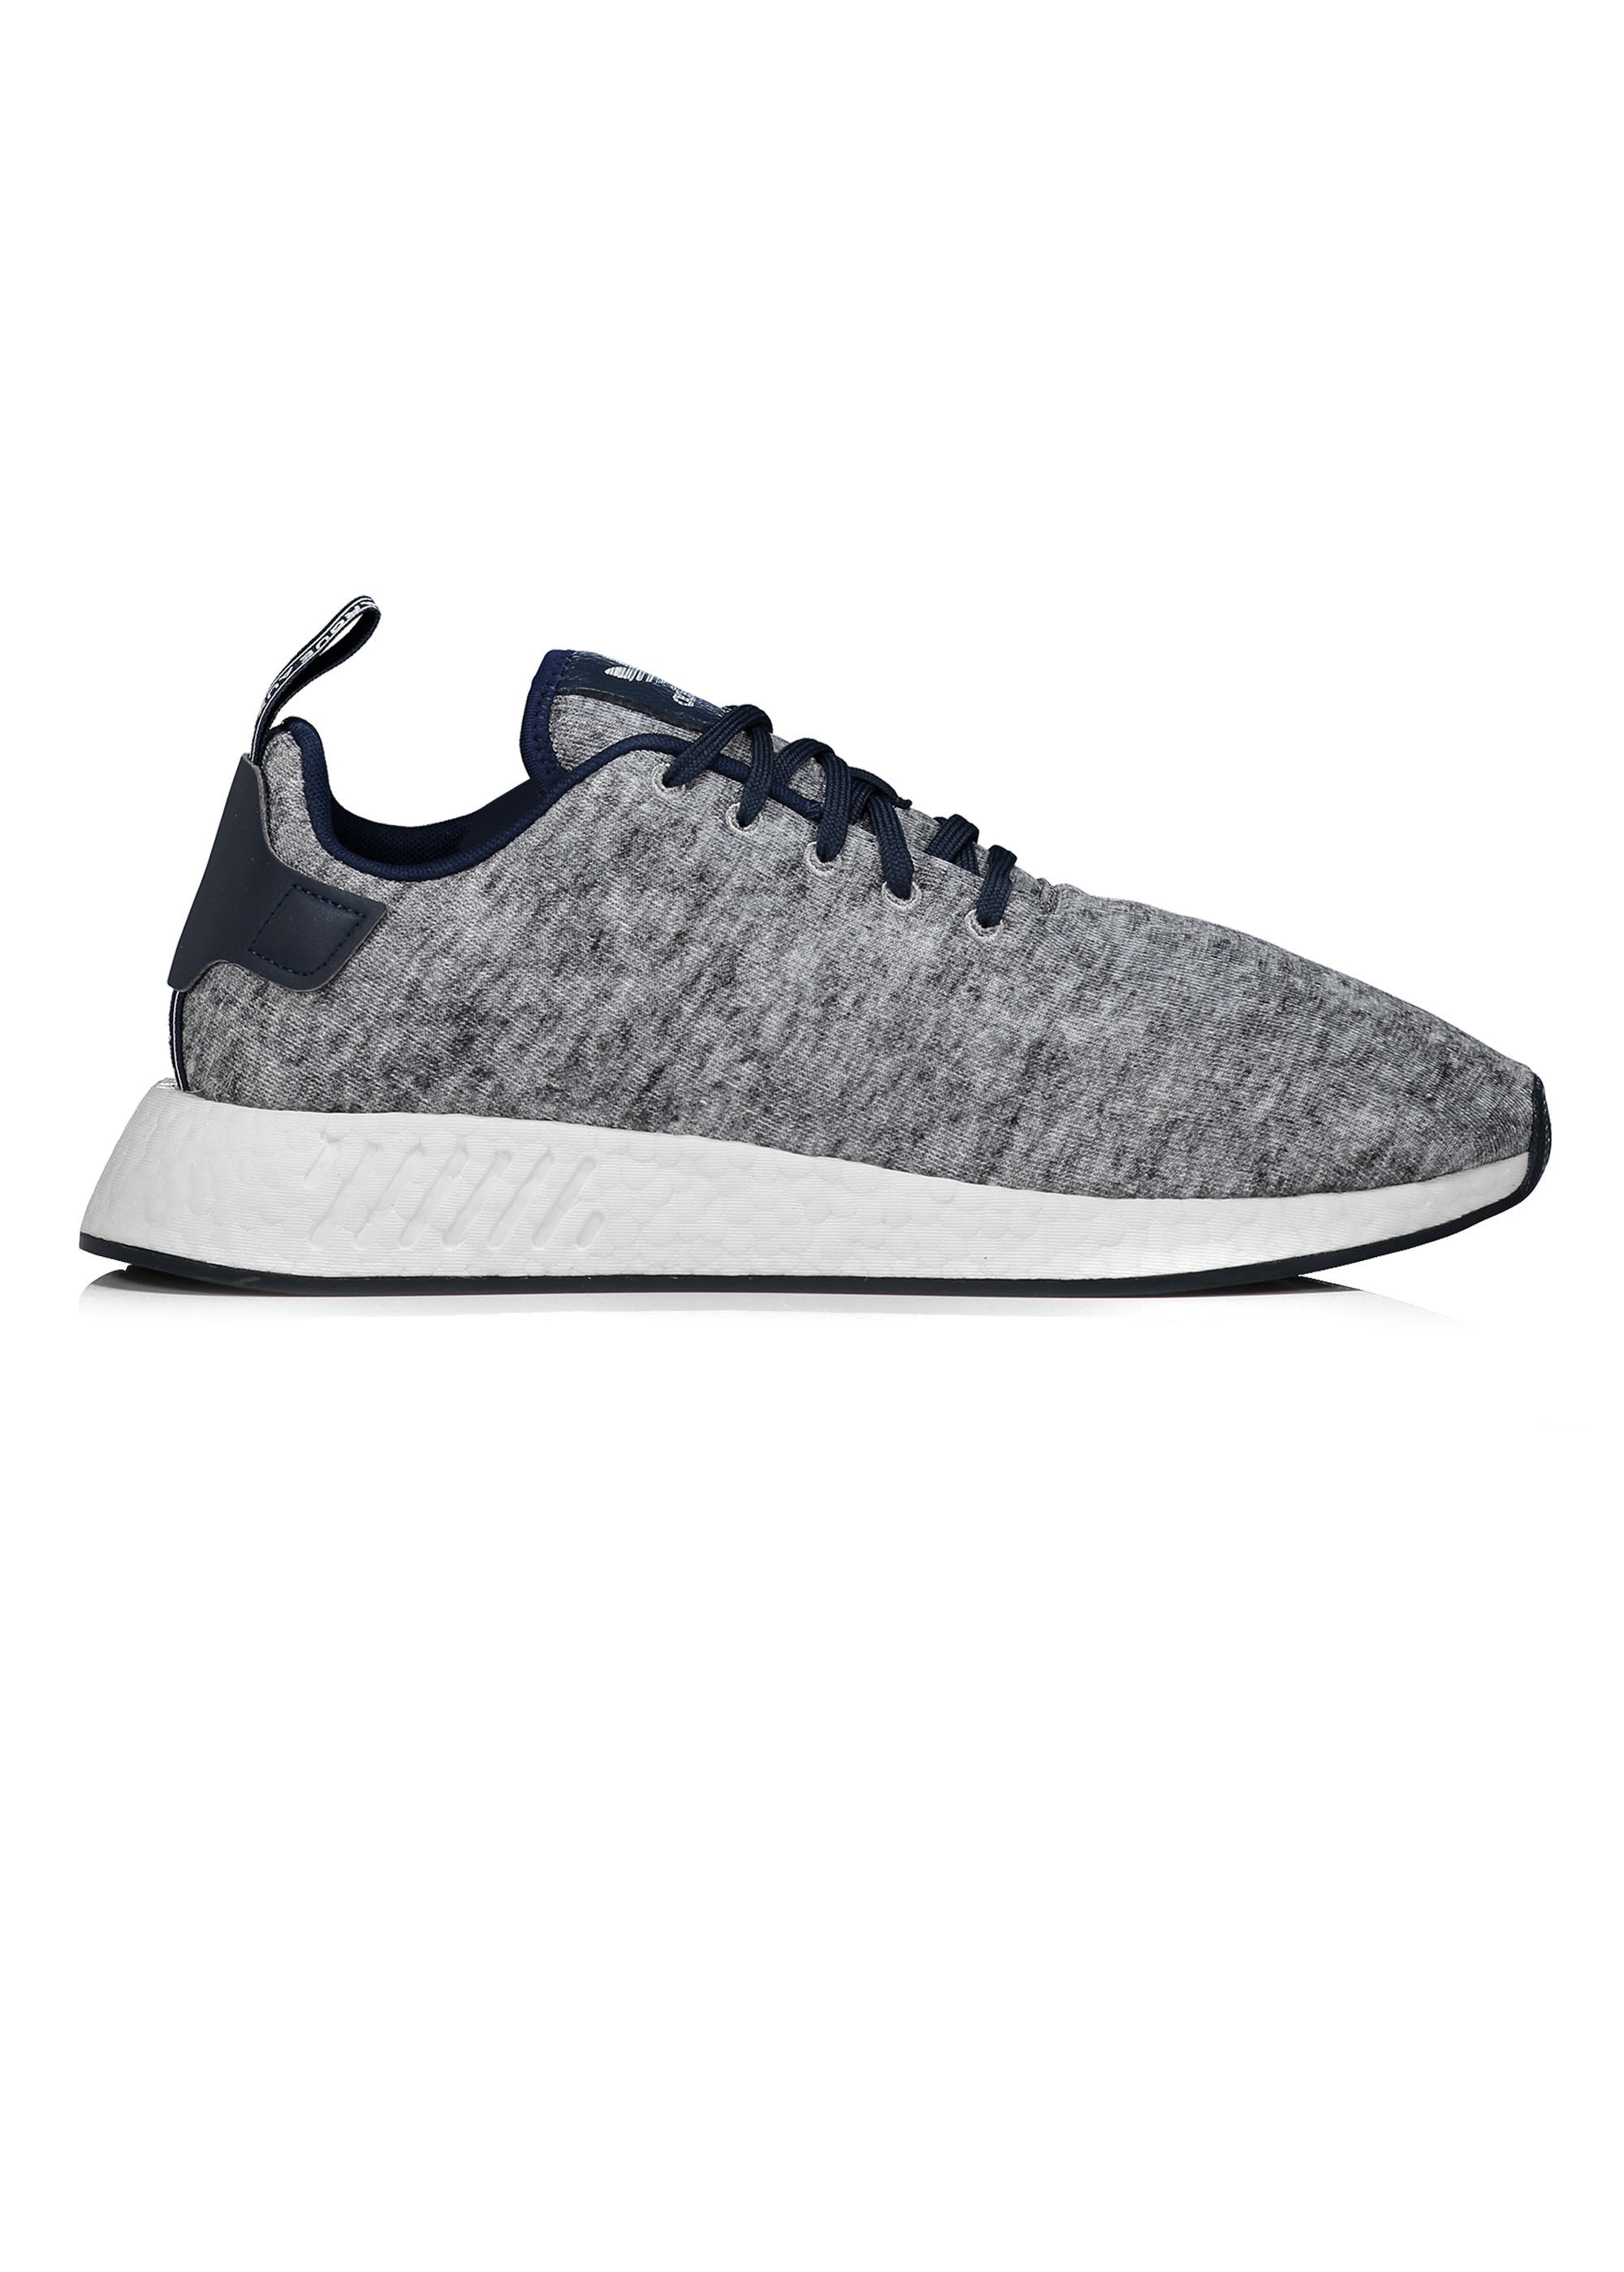 detailed look c8665 94a4b adidas Originals x United Arrows & Sons NMD R2 UAS - Heather / Silver /  White